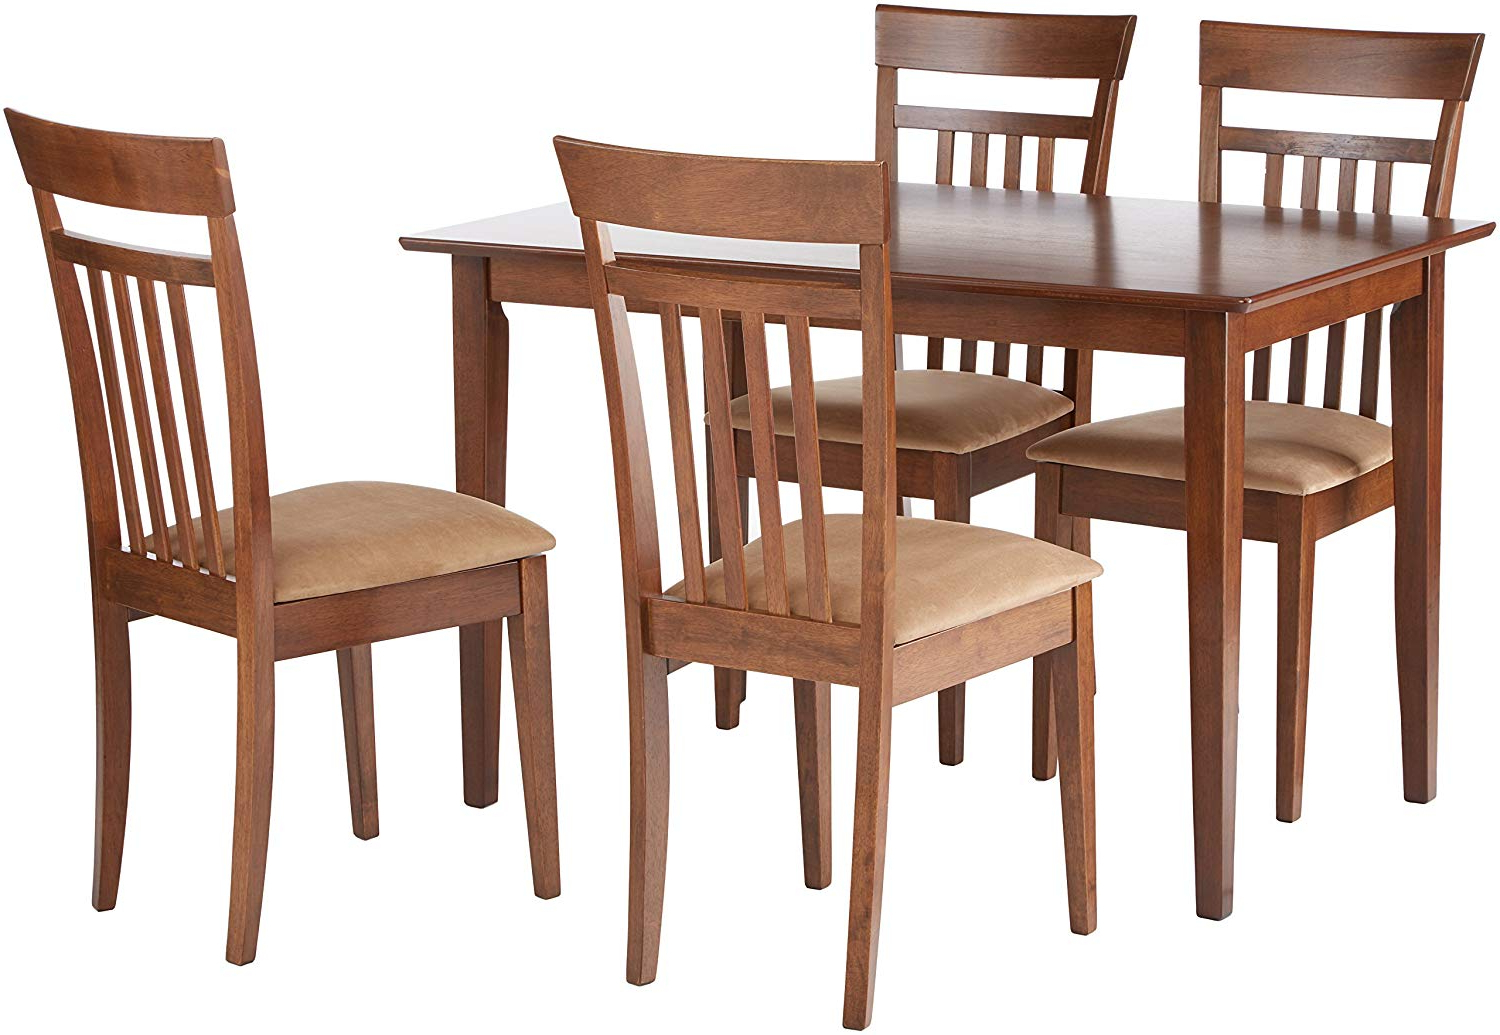 Coaster 150430ii Co 150430 5 Pc Dining Set, Walnut Throughout Most Recently Released Bryson 5 Piece Dining Sets (View 10 of 20)